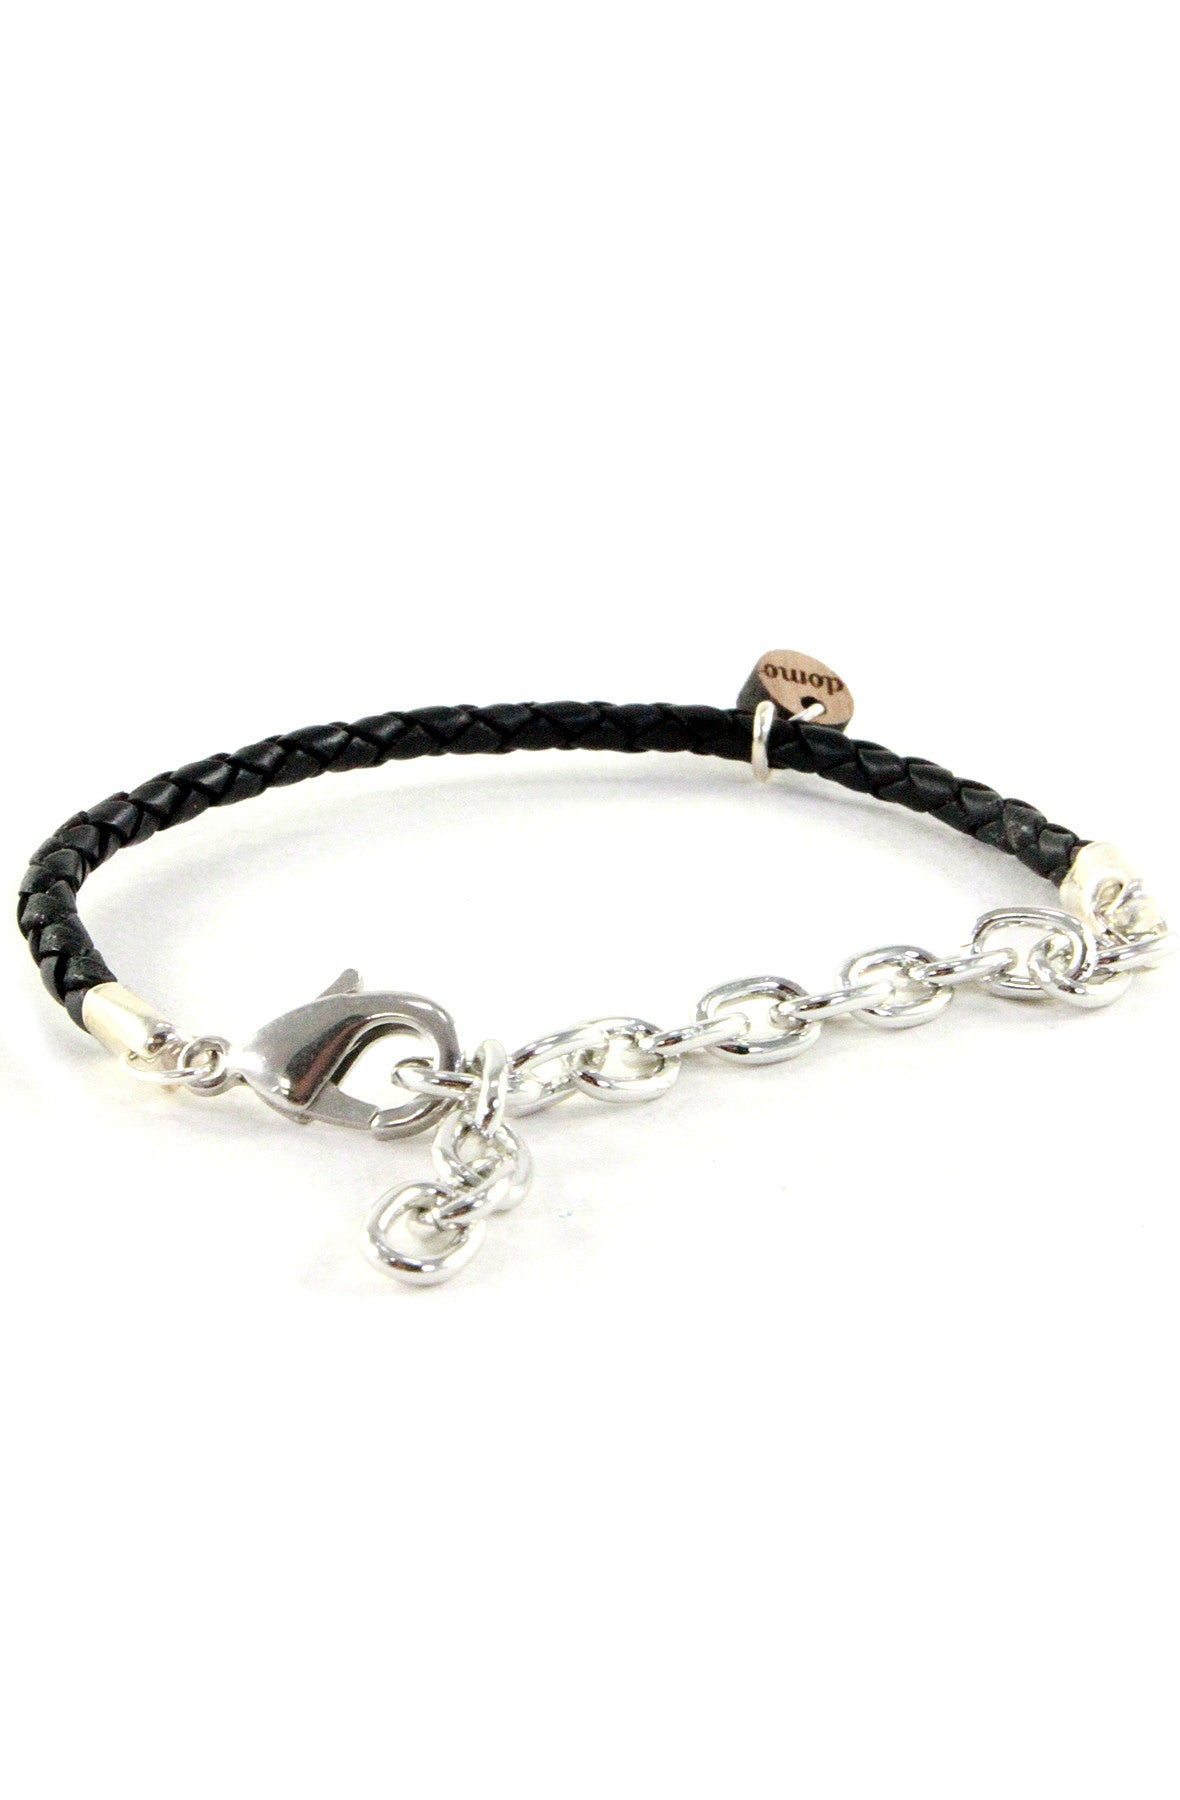 steel ankle magnetic anklet clasp bracelet stainless products charm bracelets leather mens